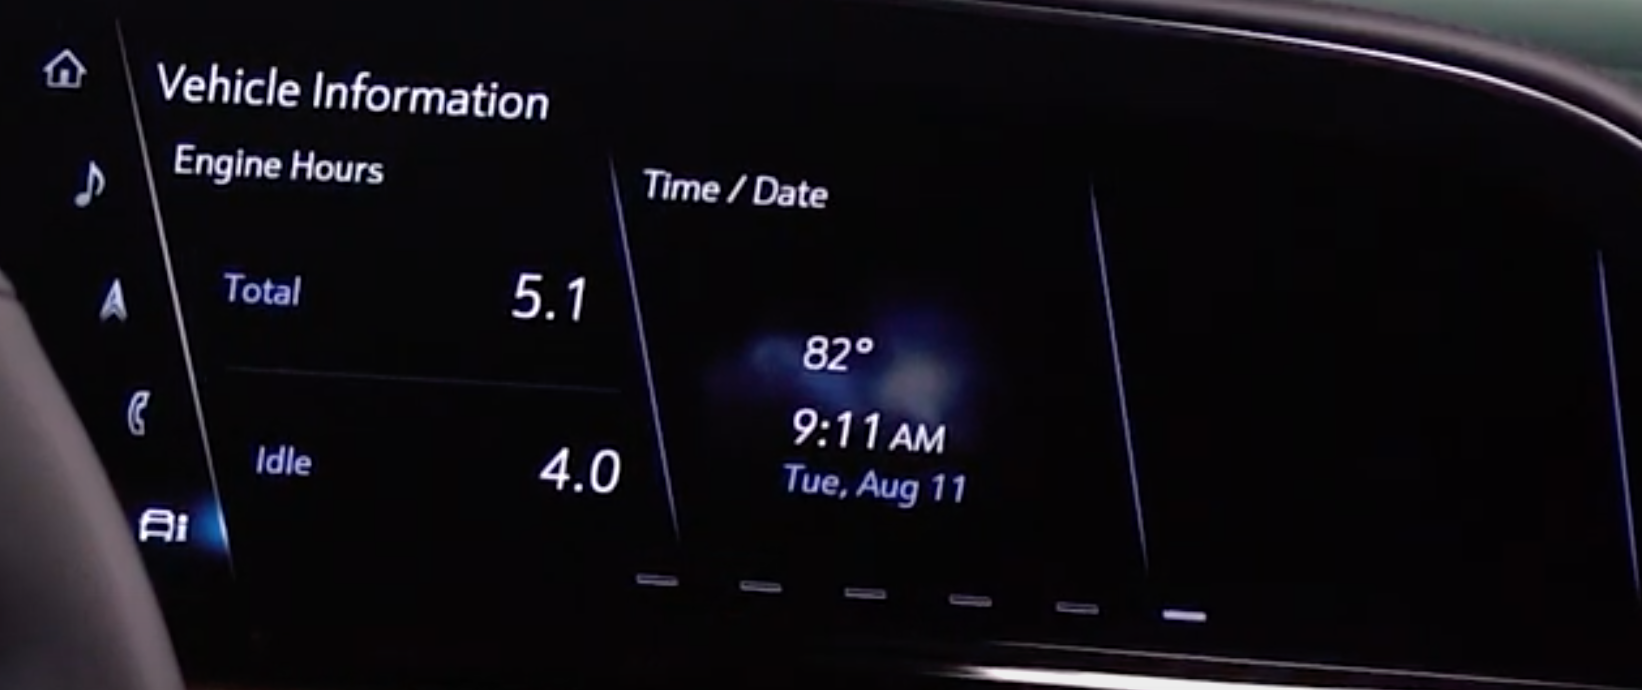 Various vehicle information such as engine hours, time and date